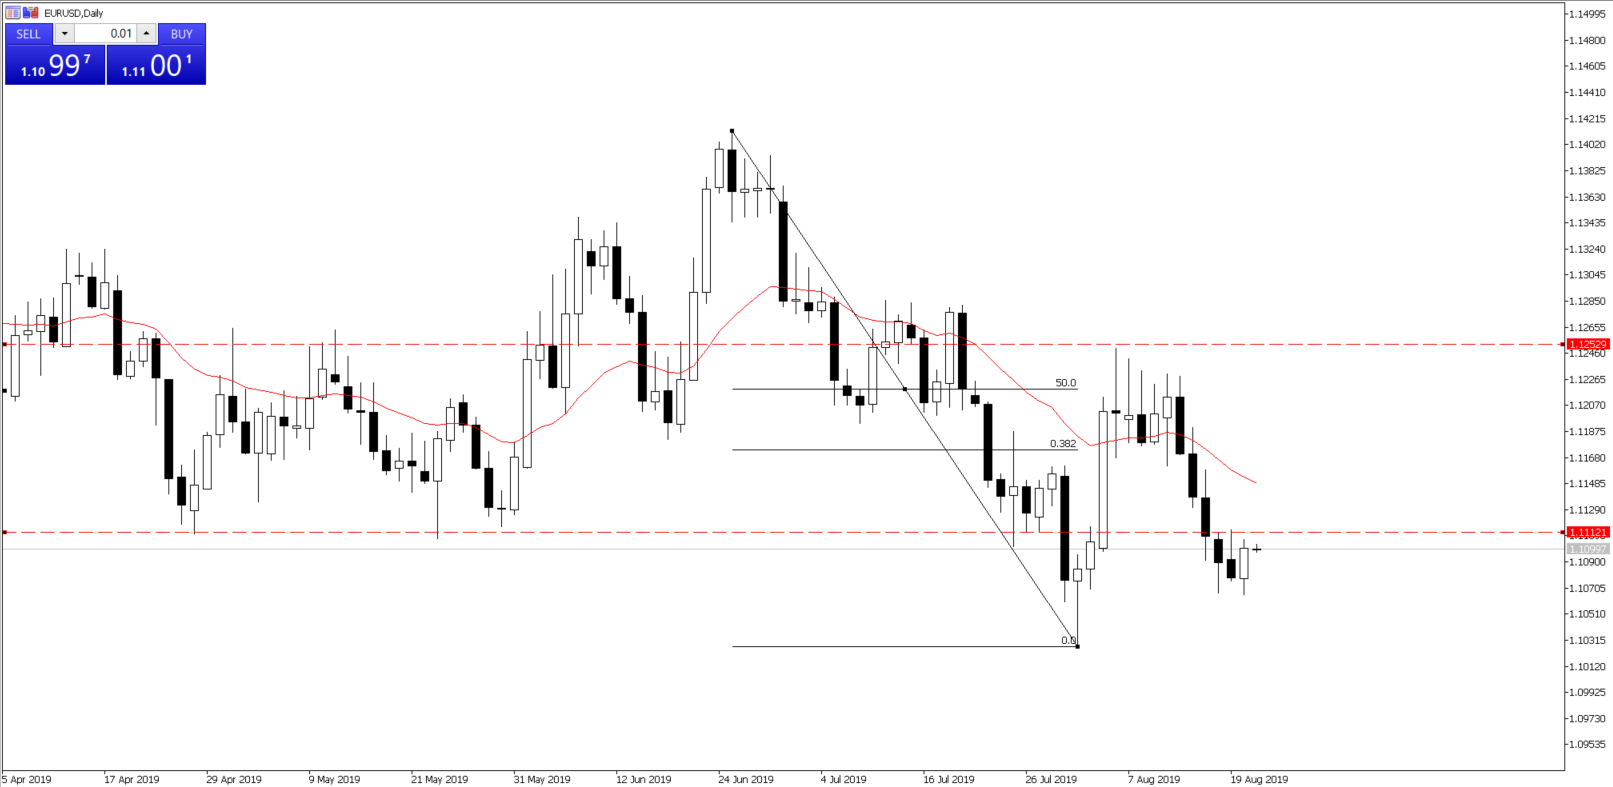 Chart of the Day - Aug 21, 2019 - EURUSD, daily